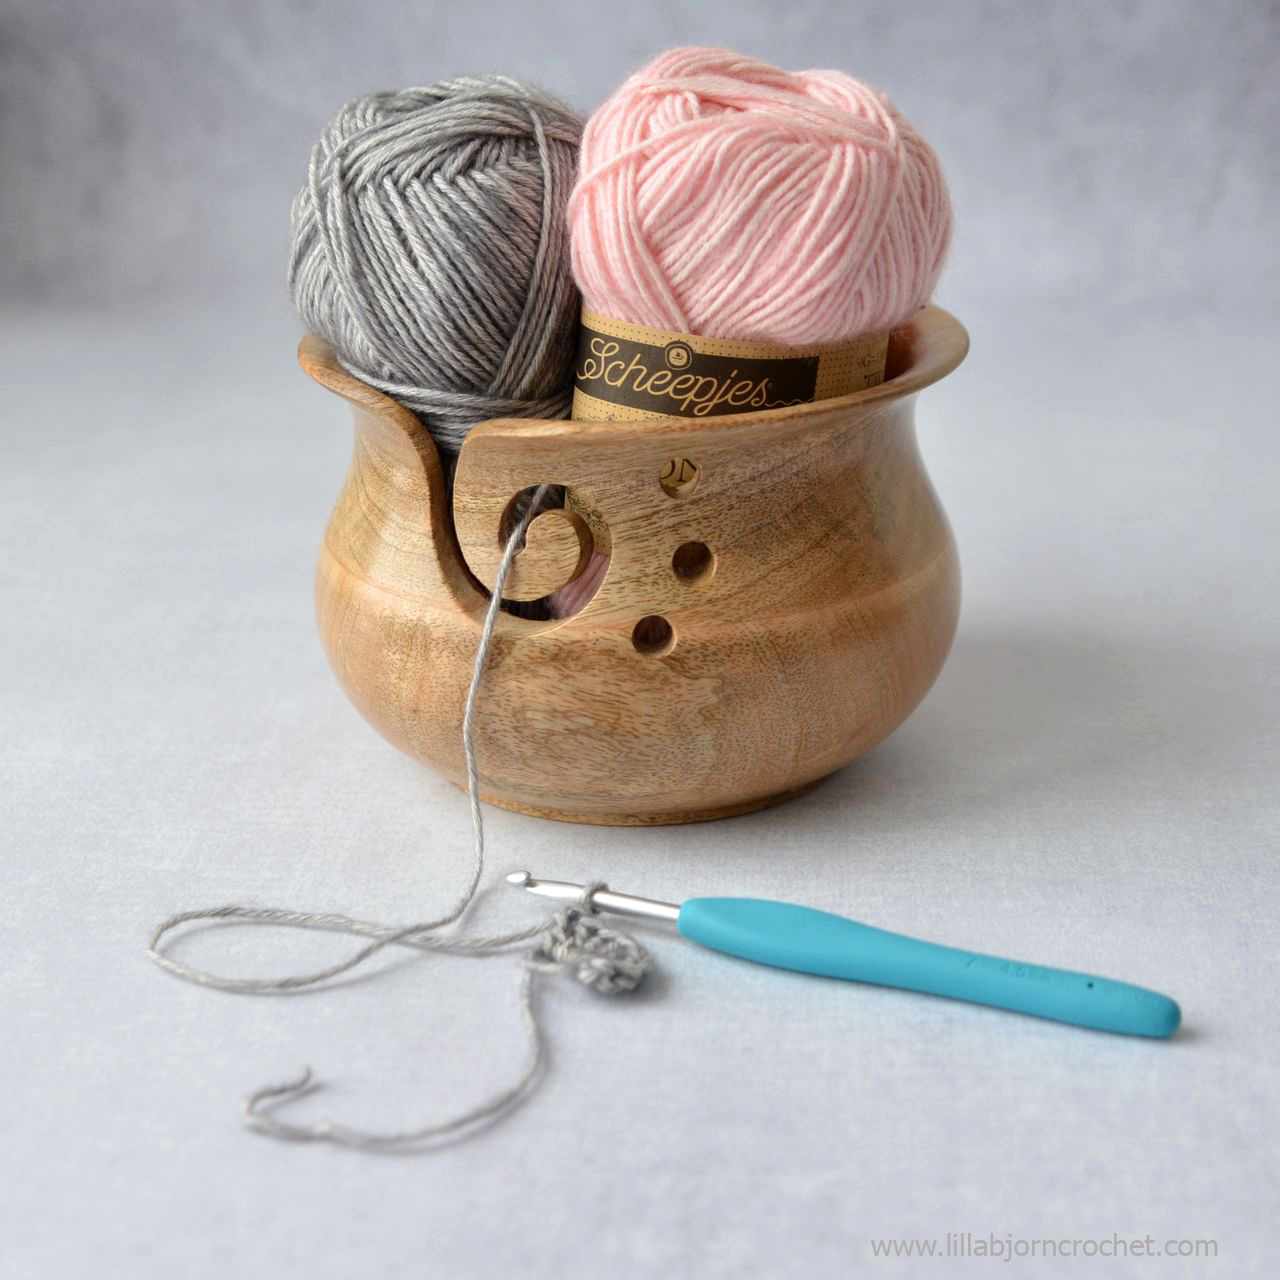 Yarn Bowl by Scheepjes. Greative gift guide from www.lillabjorncrochet.com